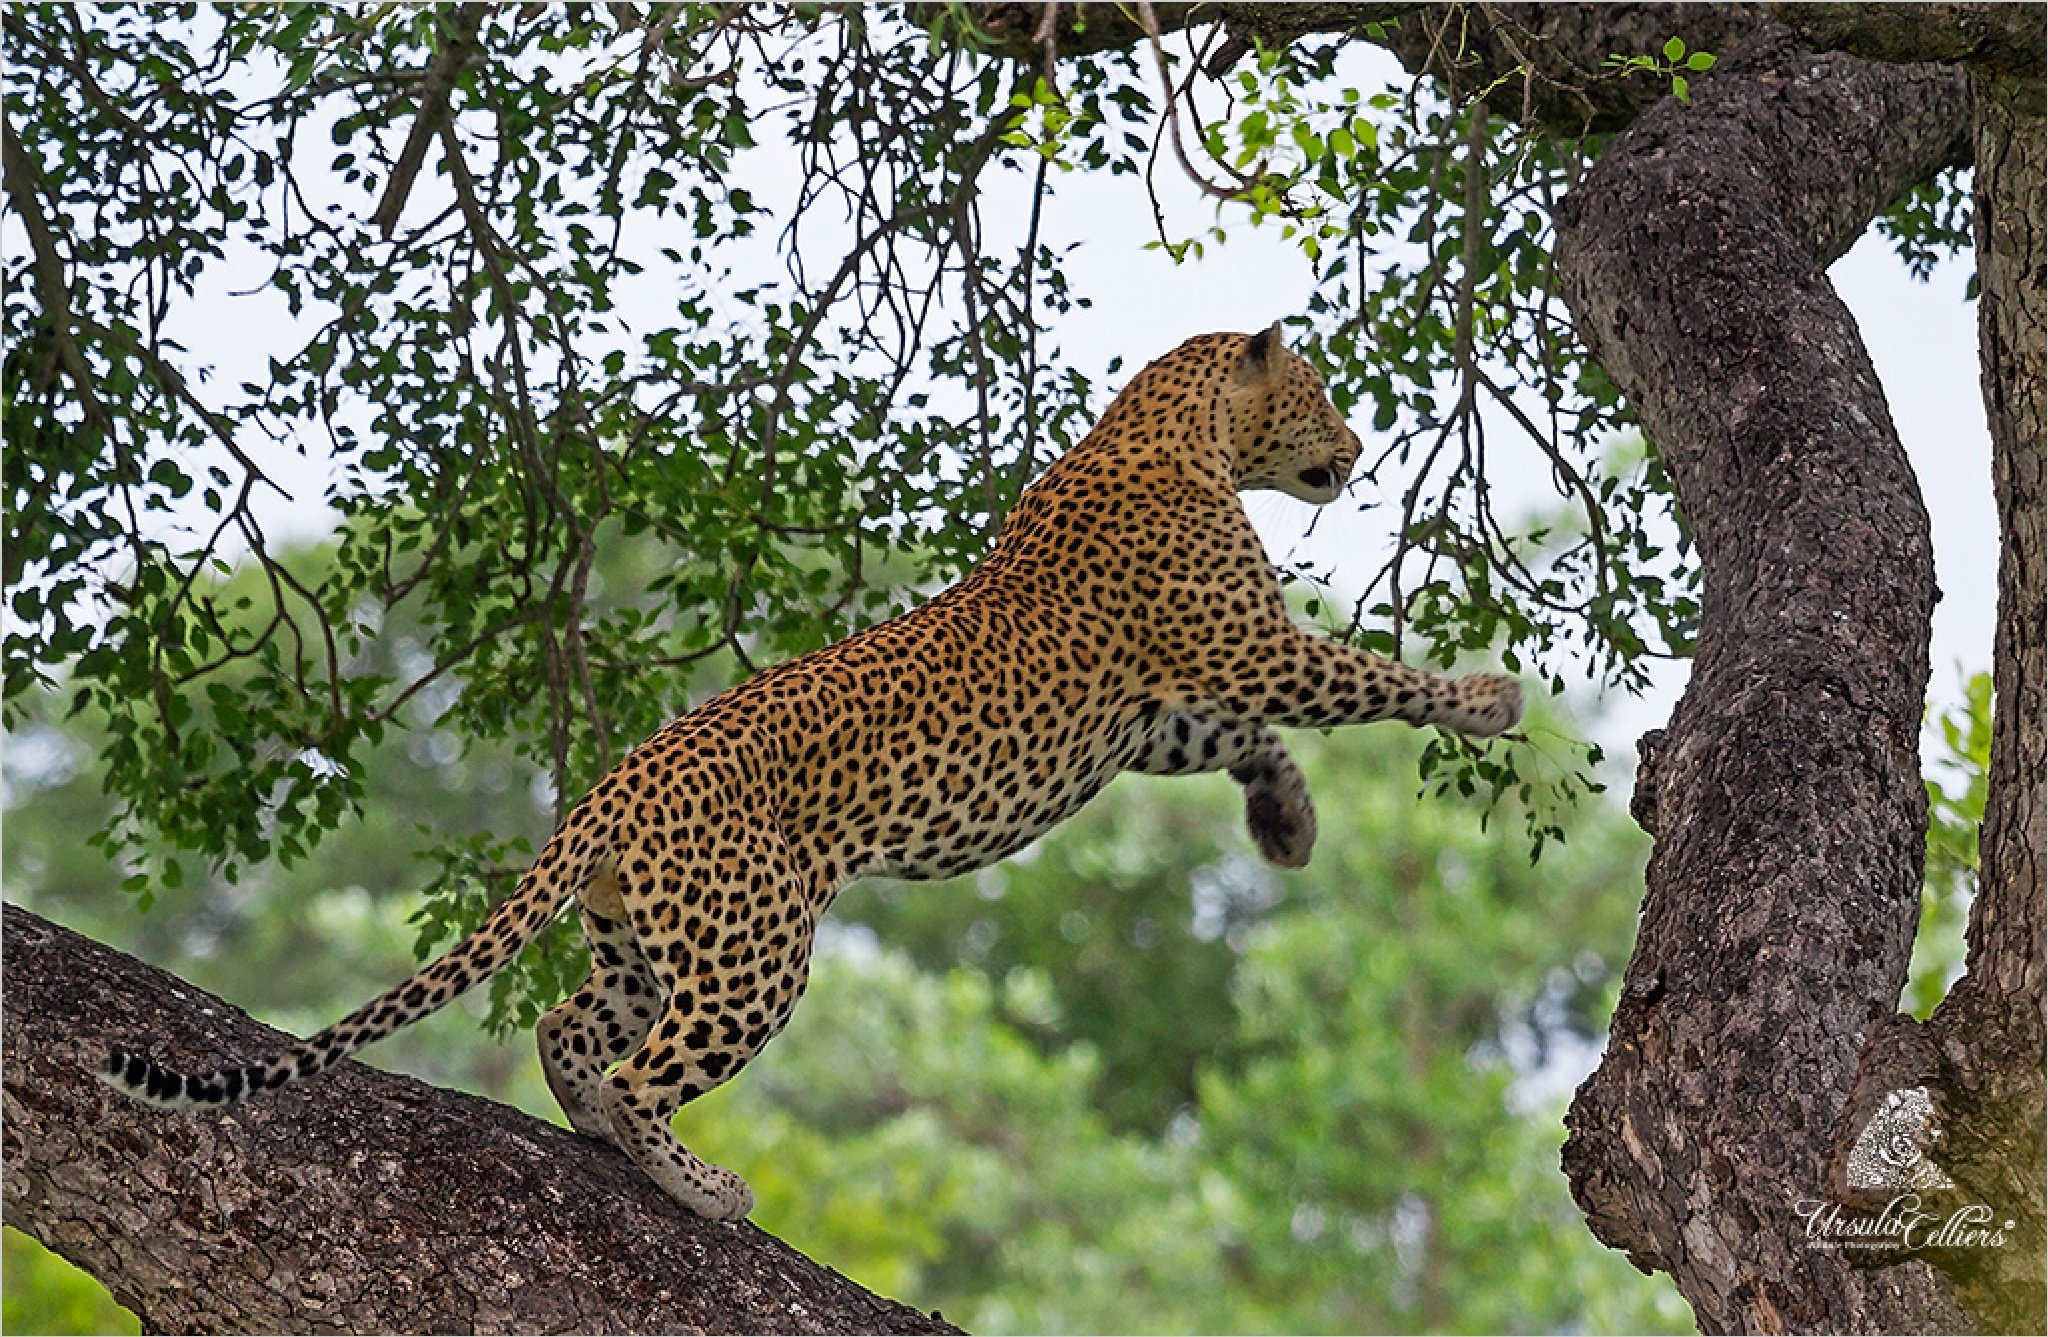 The jump by Ursula Celliers - Wildlife Photography